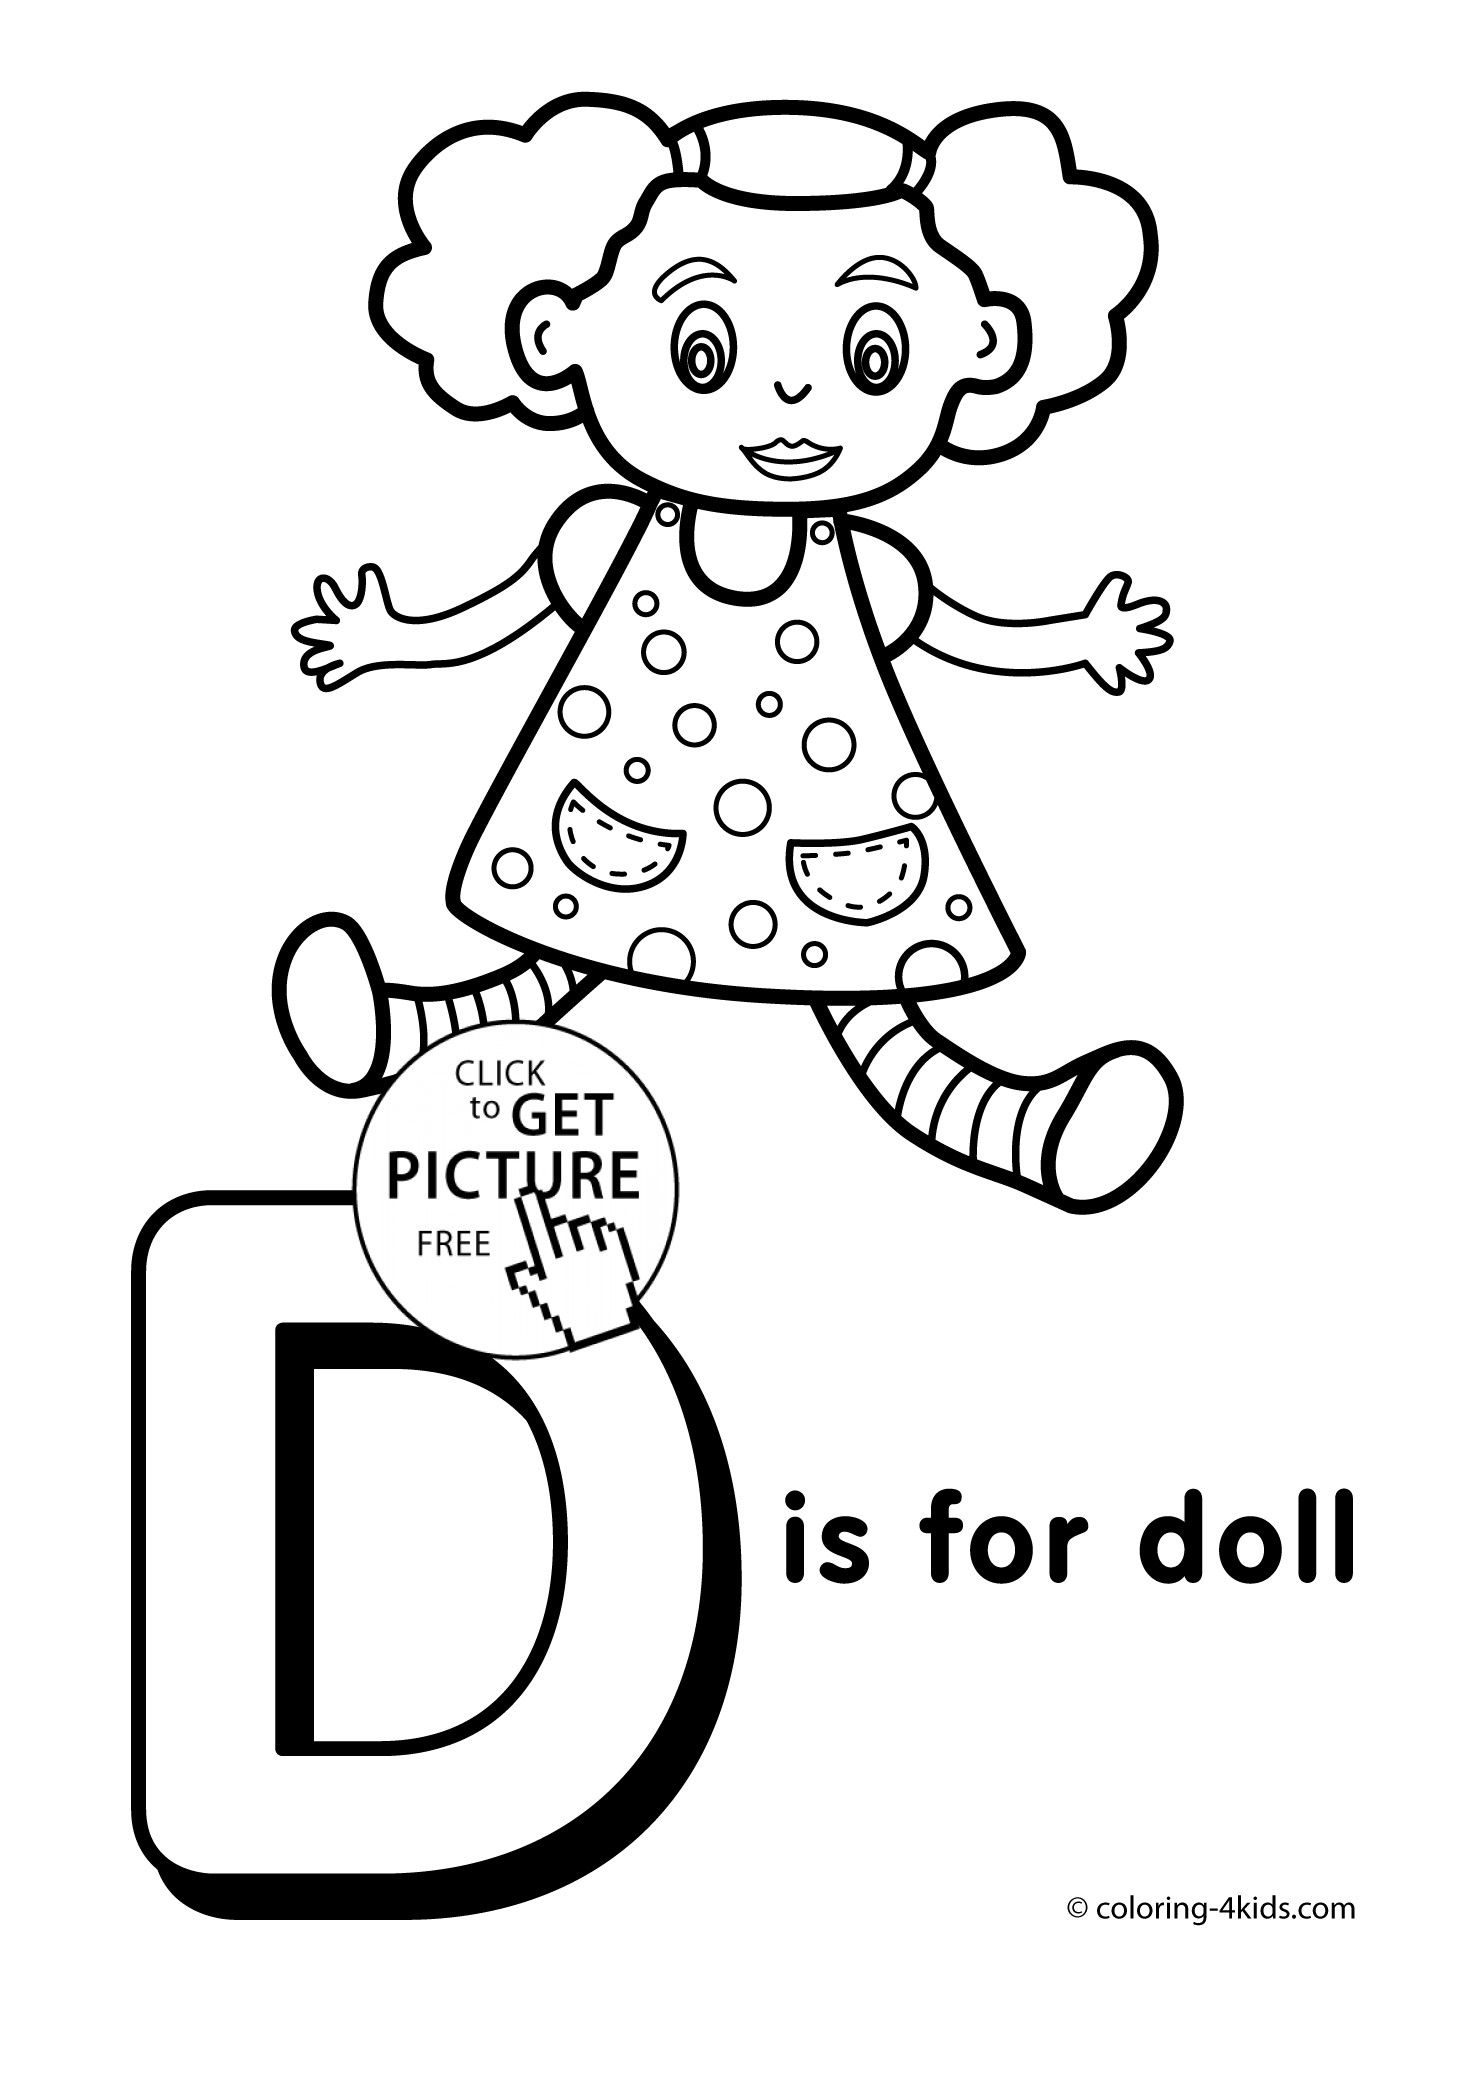 Dltk Printables Letters Dltk Printable Letters Free Printable Abc Coloring Pages Letter A Coloring Pages Alphabet Coloring Pages